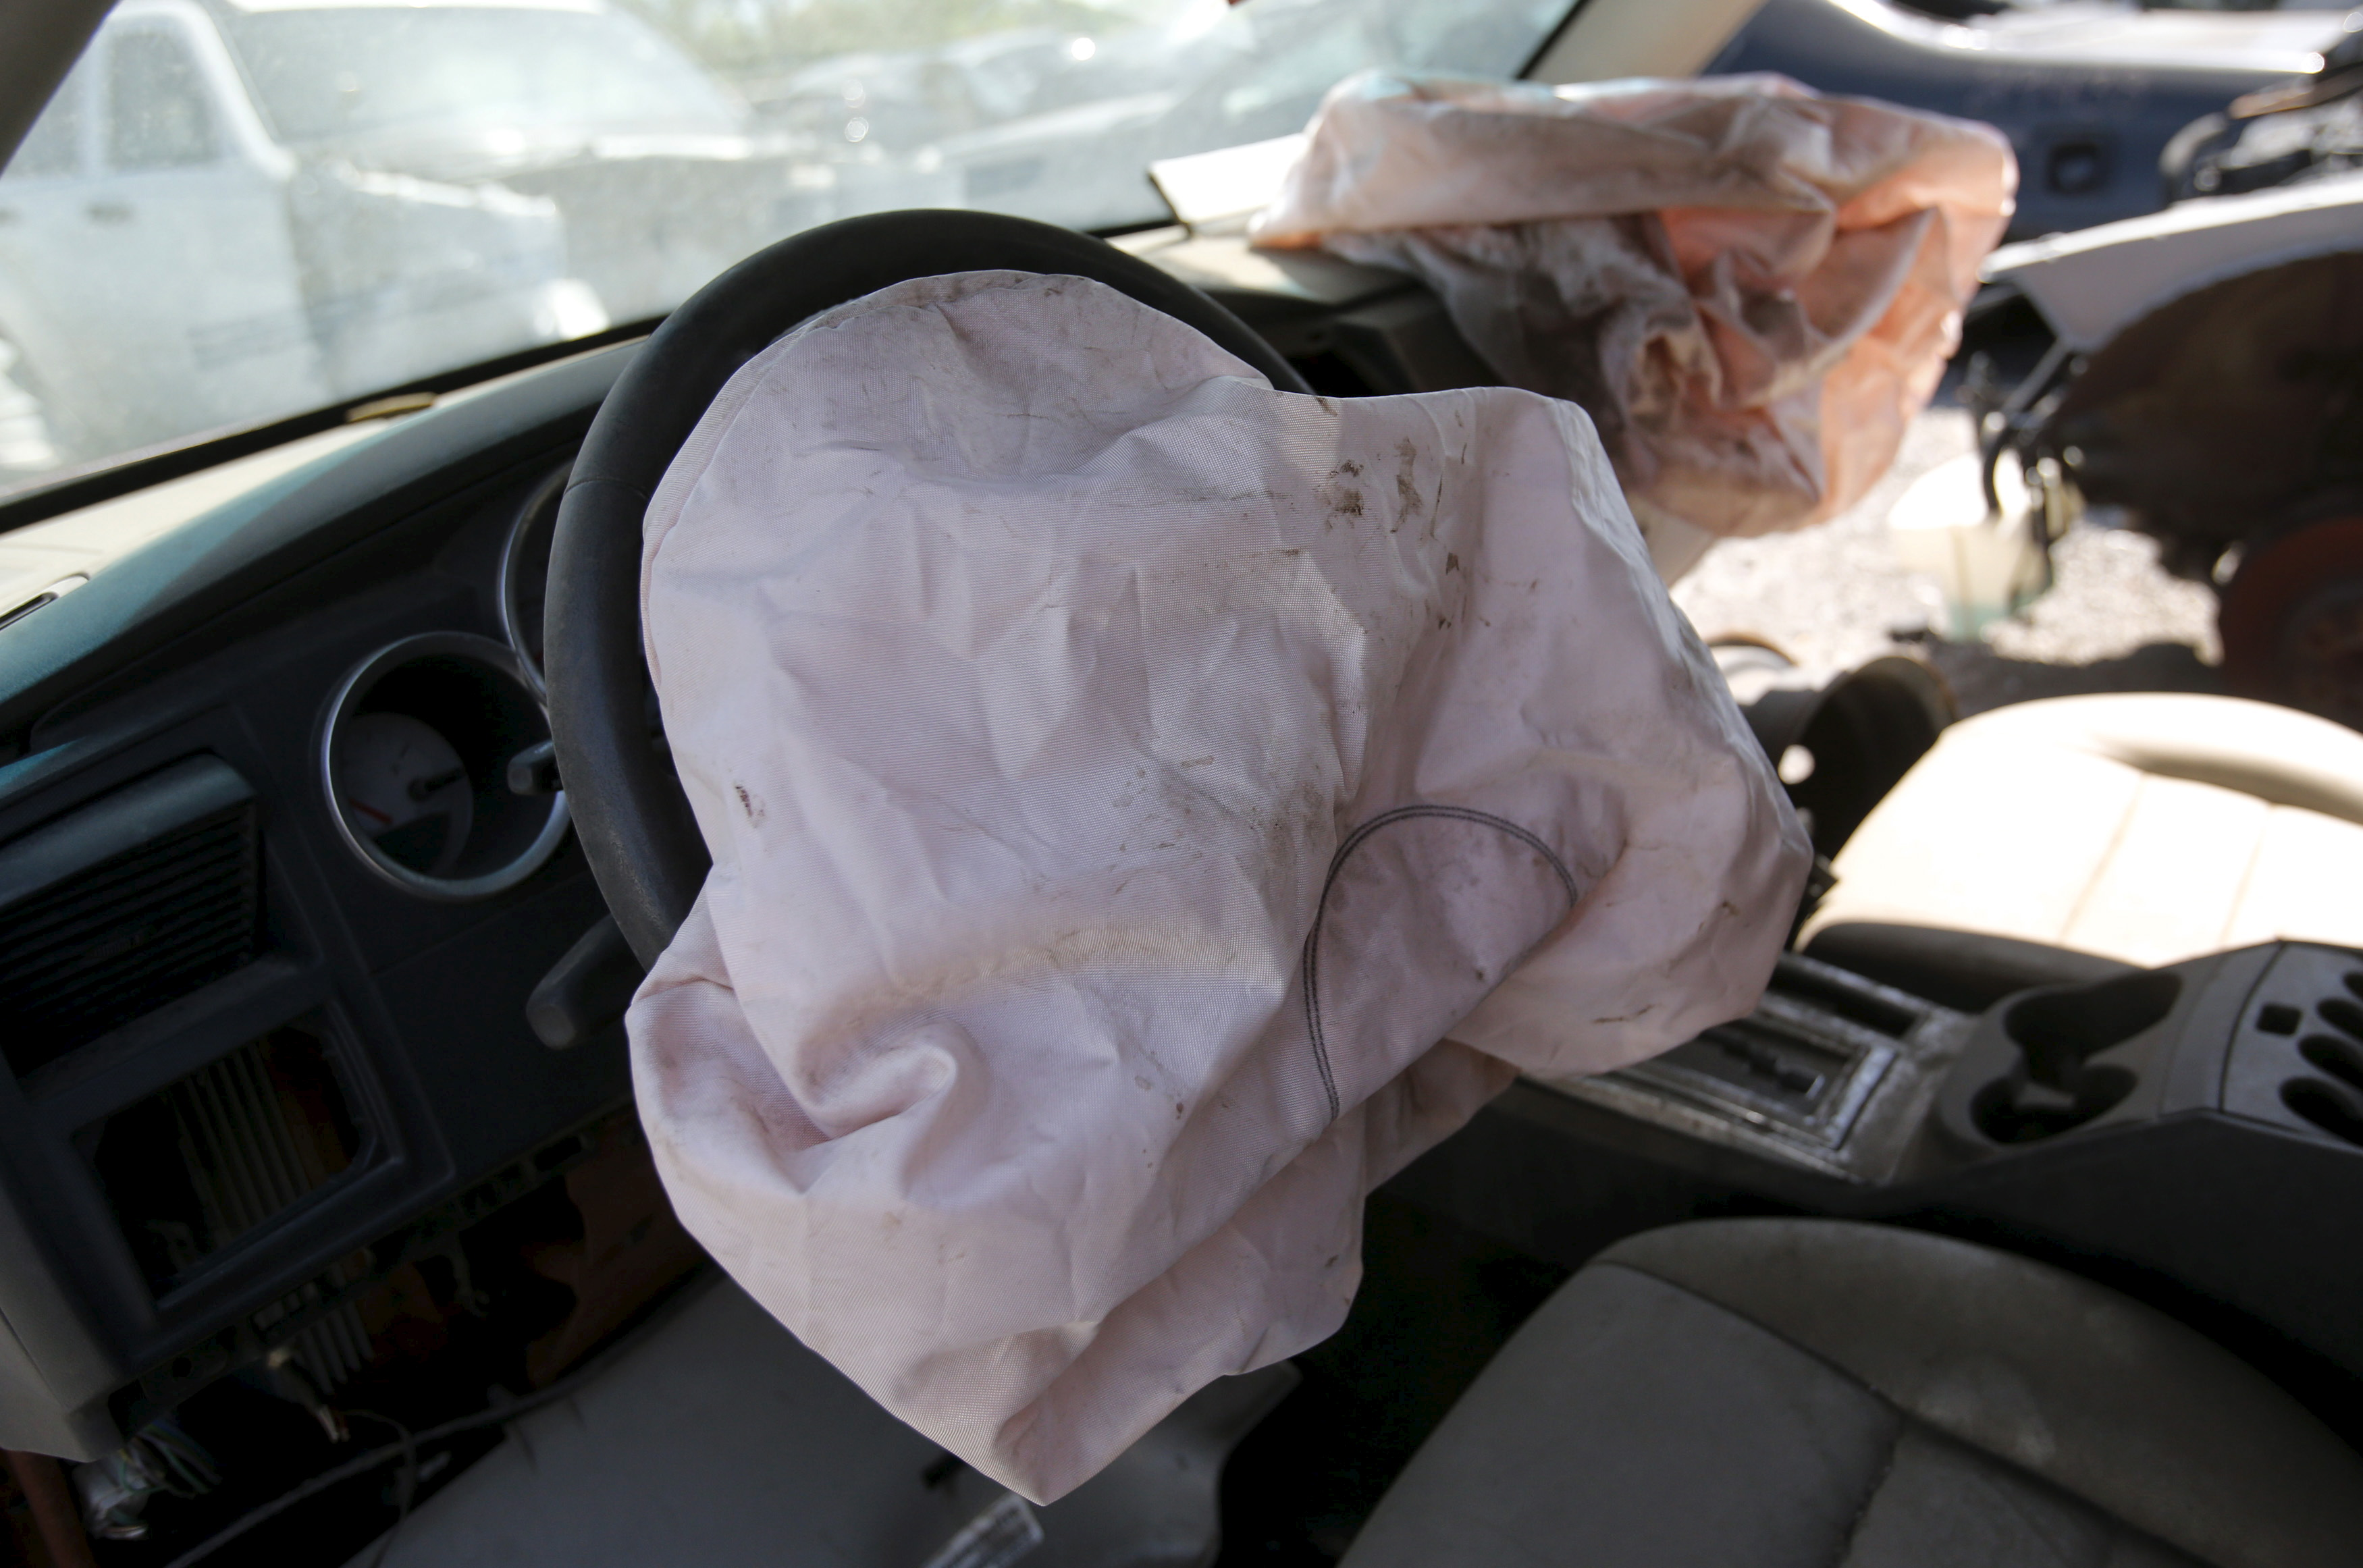 The Takata Airbag Inquiry Widens Fortune